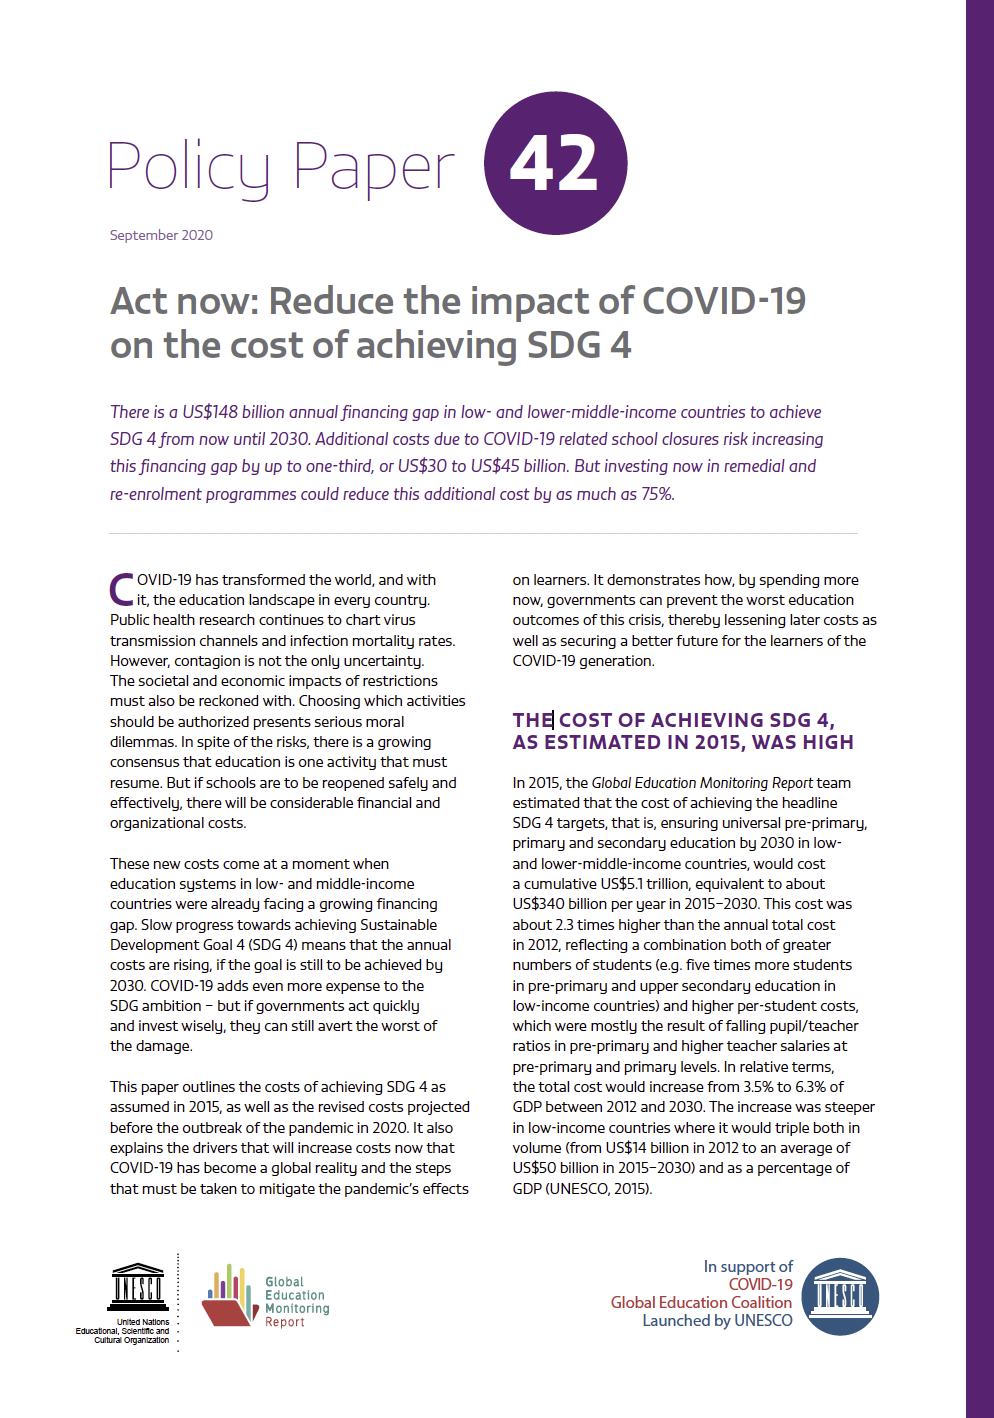 Act Now Reduce The Impact Of Covid 19 On The Cost Of Achieving Sdg 4 Global Education Monitoring Report